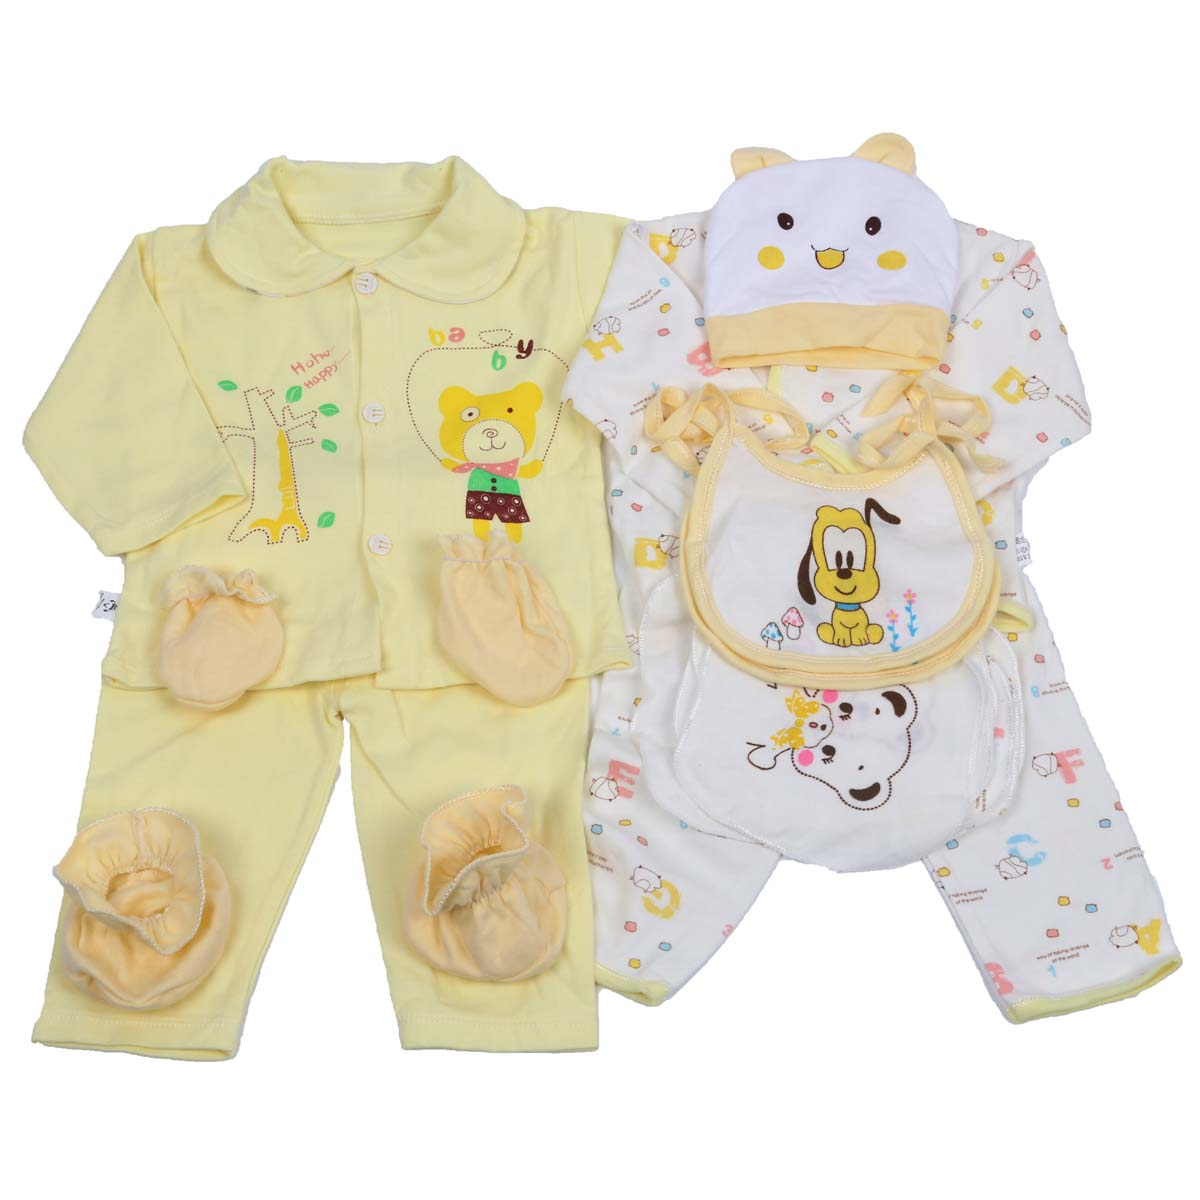 Newborn Infant Outfits Details About 18pcs Set Newborn Baby Clothes Girls Boys Clothing Set Cute Infant Outfits Suit